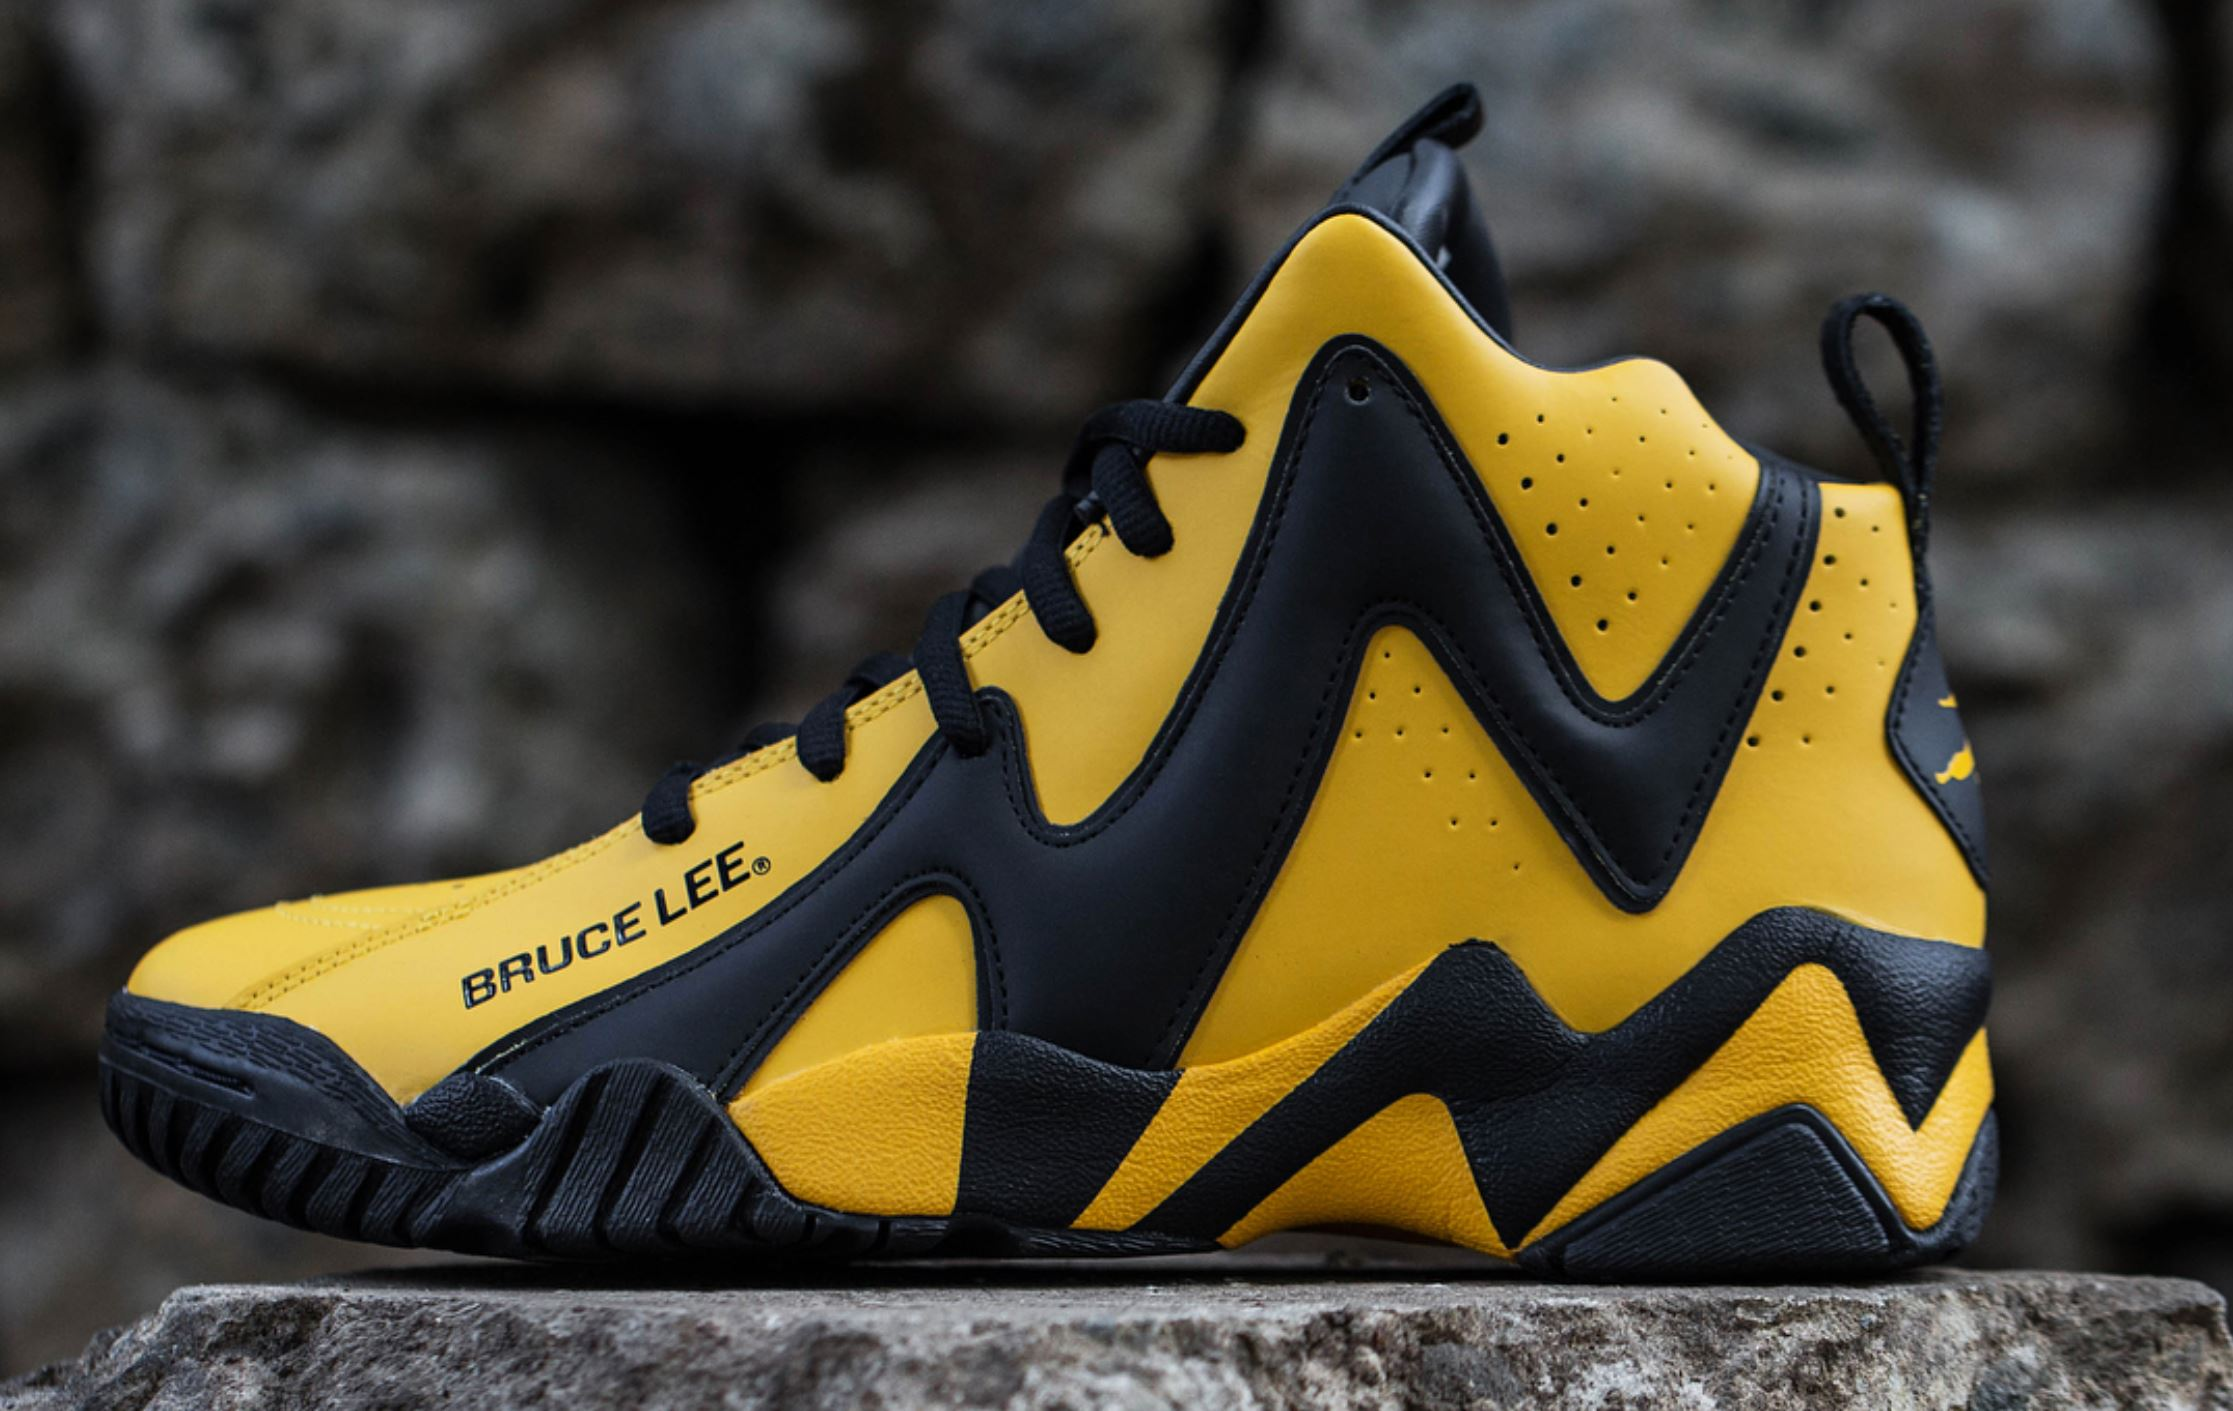 sports shoes 7a51f ac7b6 BAIT Unveils Bruce Lee Reebok Kamikaze 2 for All-Star ...